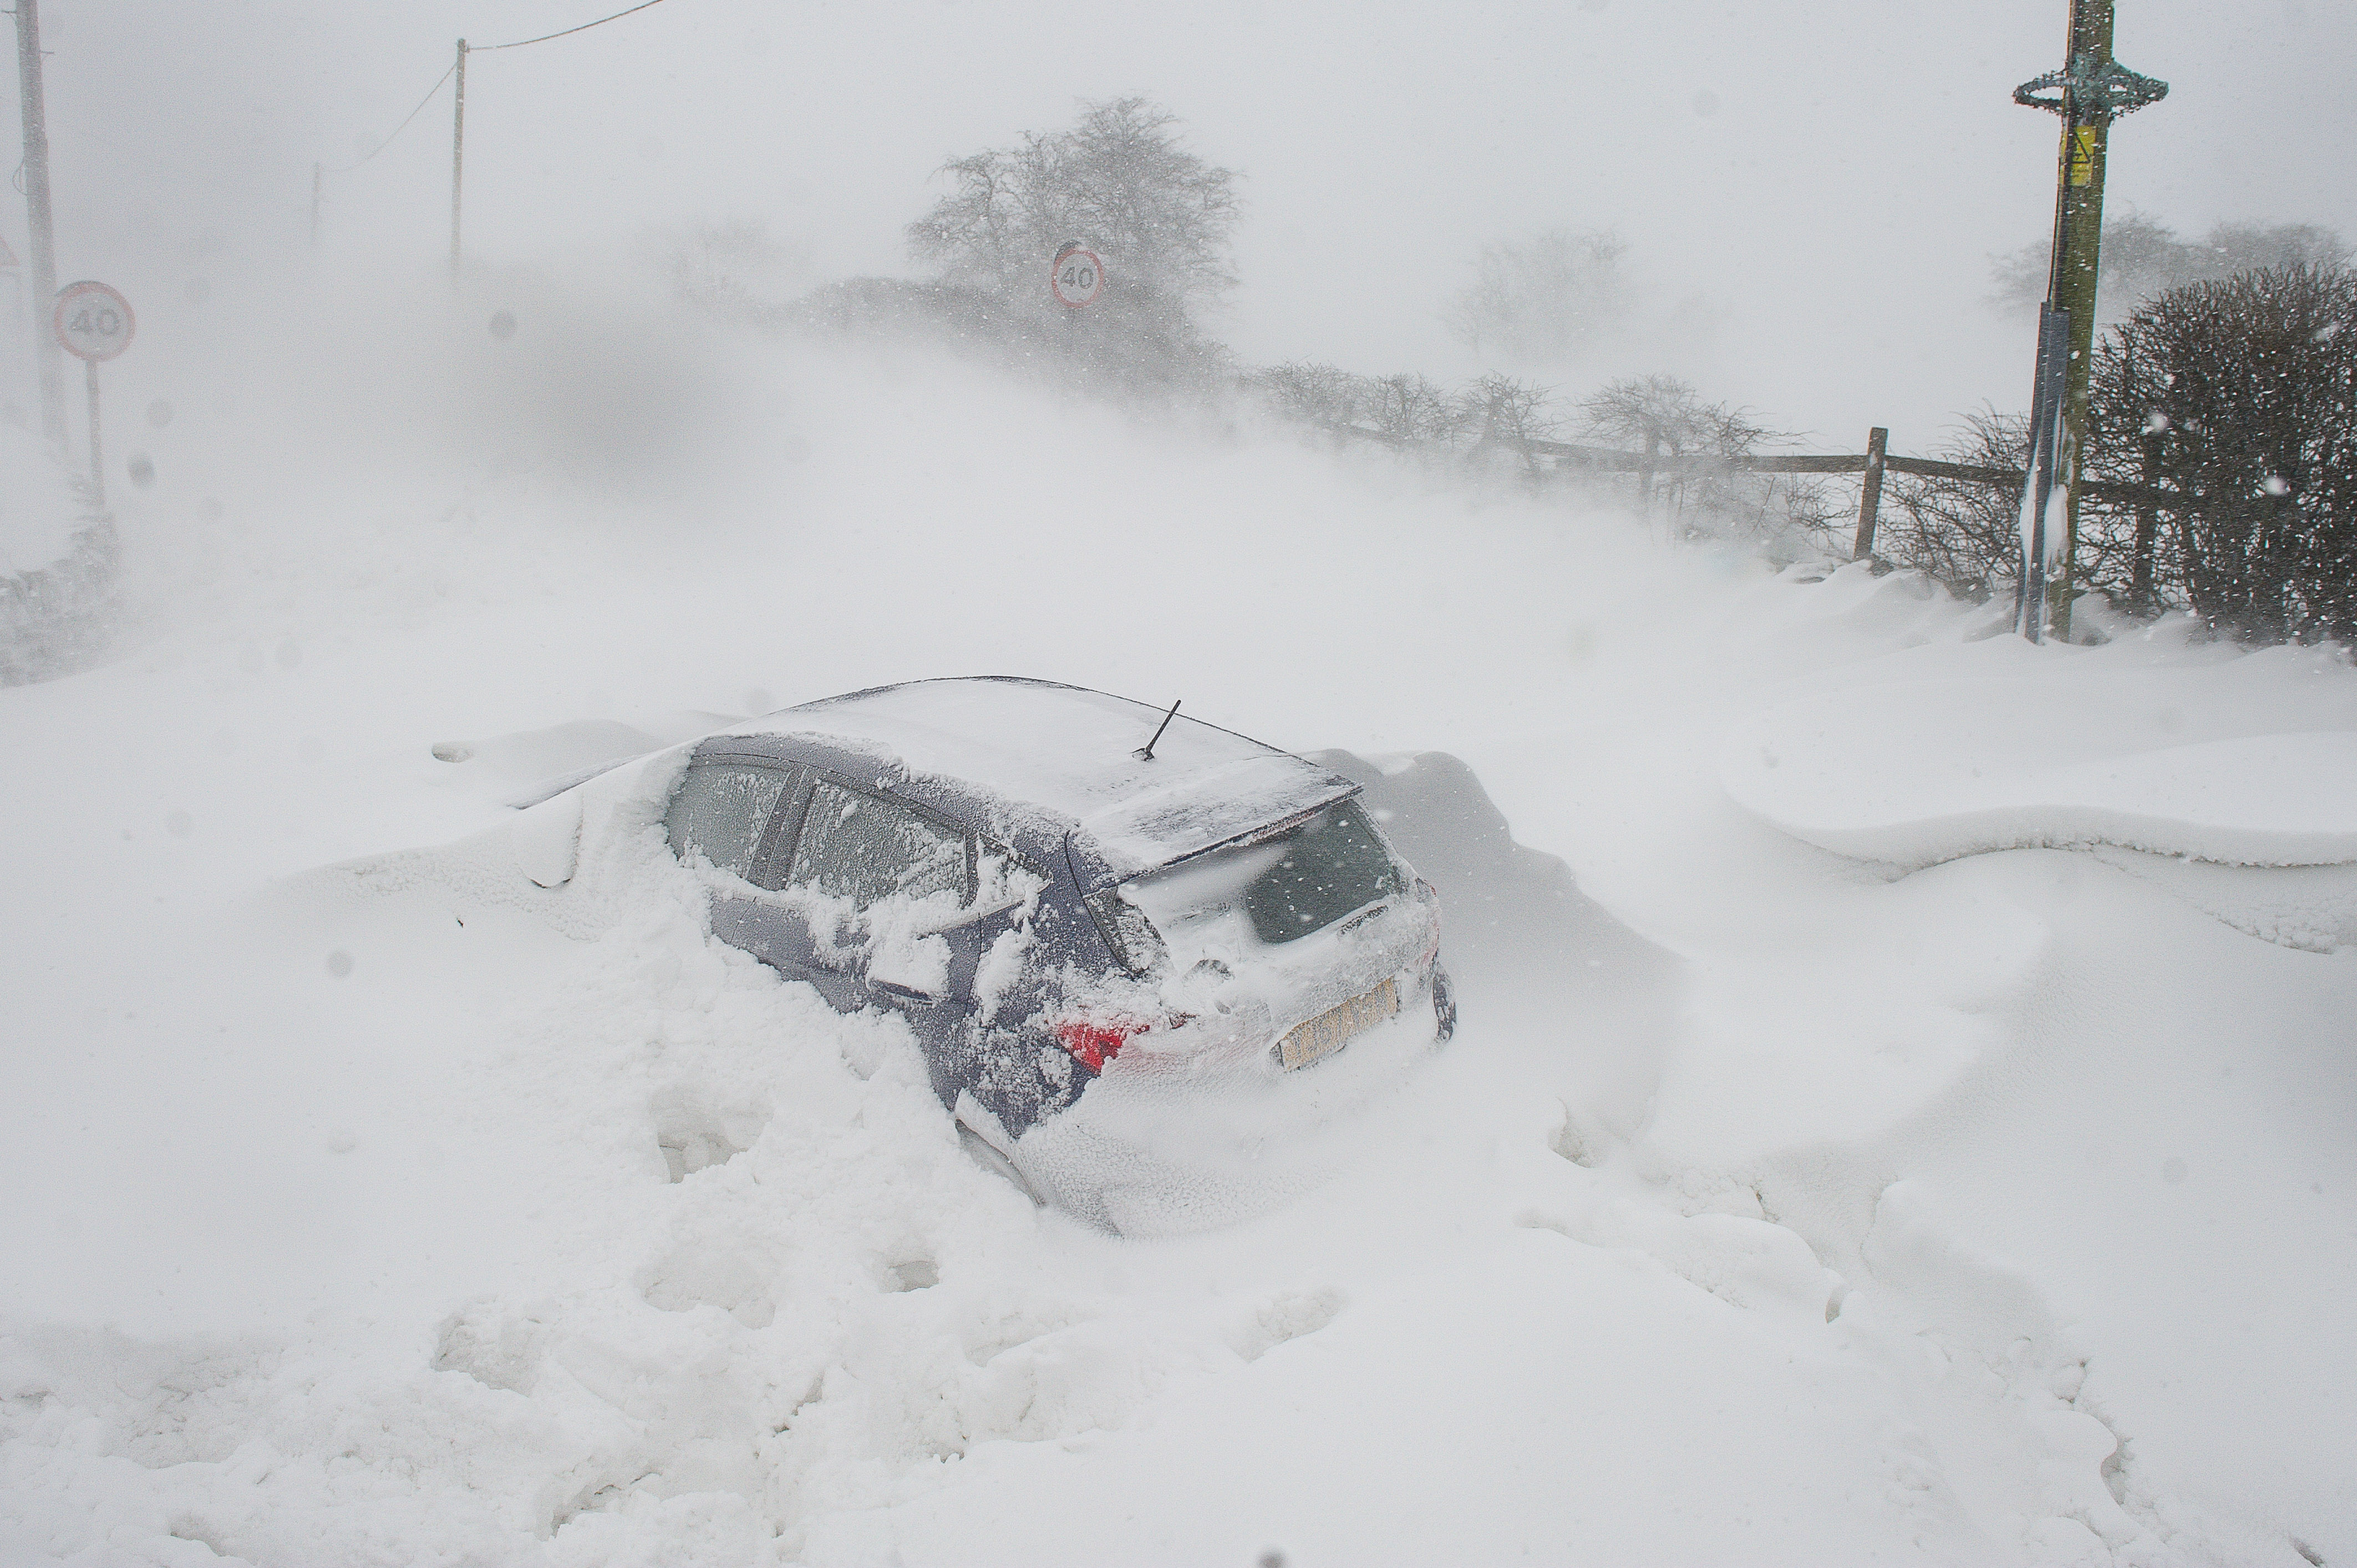 STORM EMMA IN SADDLEWORTH